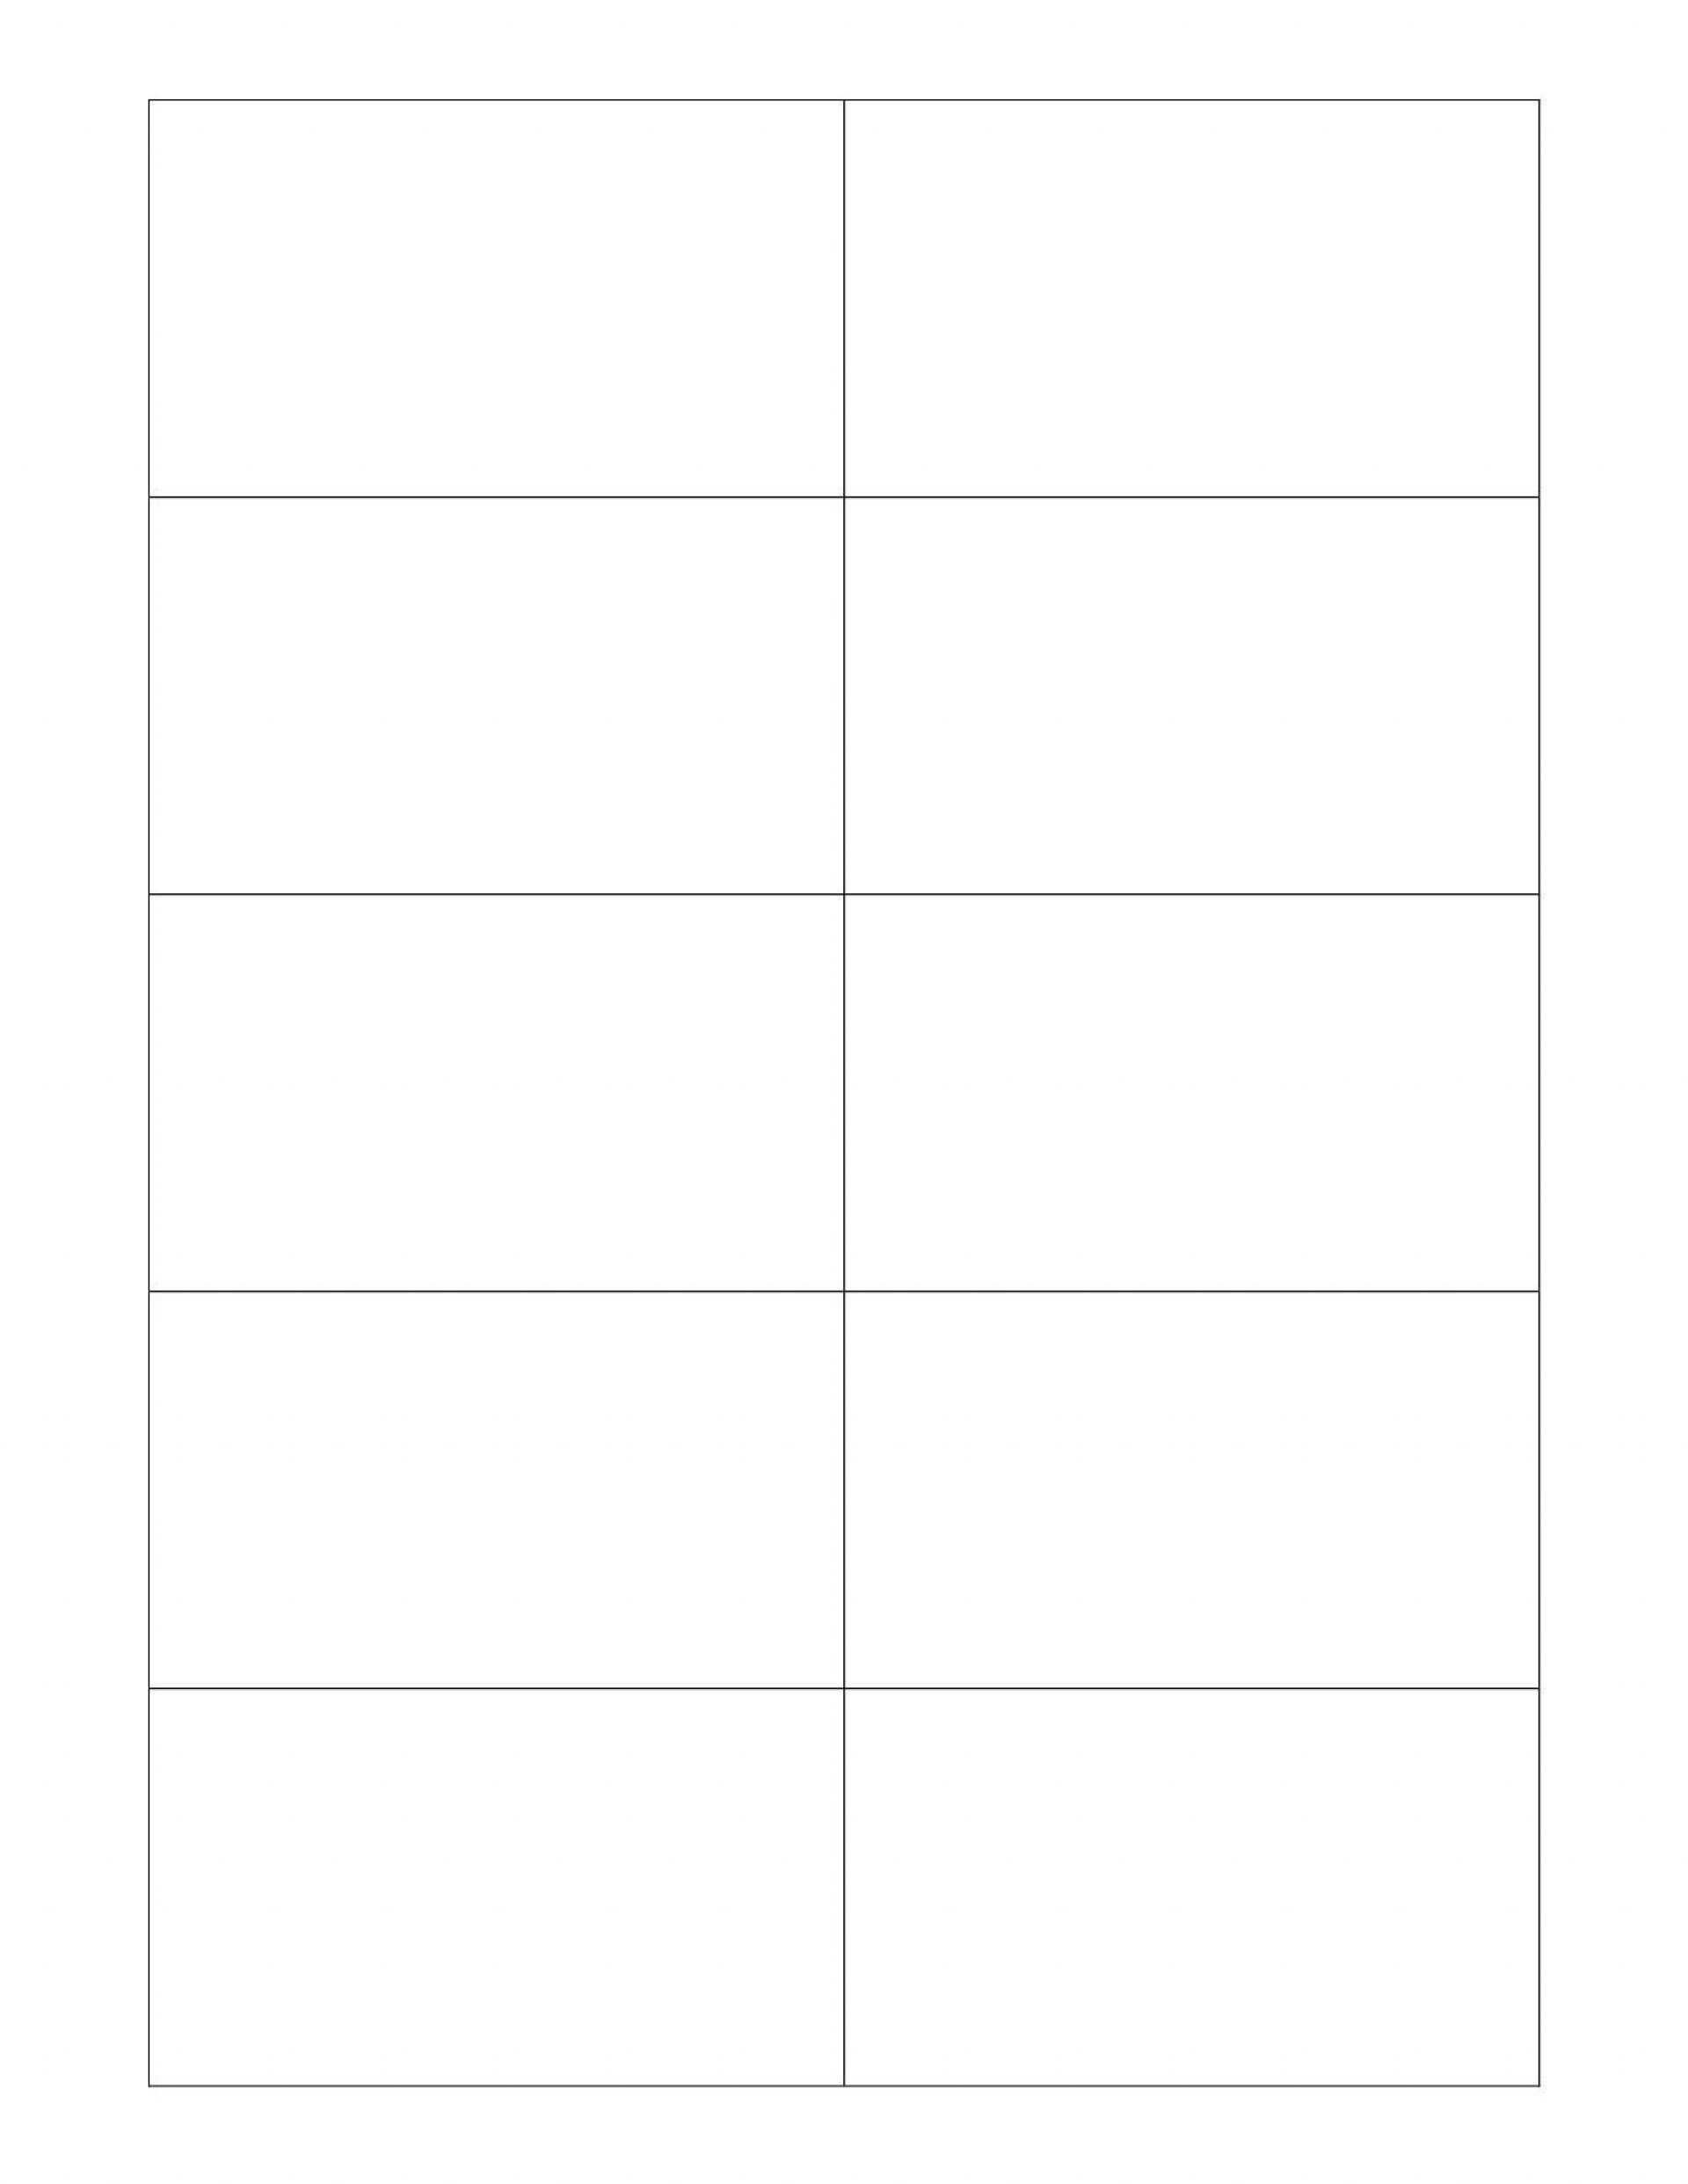 000 Unique Busines Card Template Microsoft Word Highest Clarity  Avery 8 Per Page How To Make A Layout OnFull